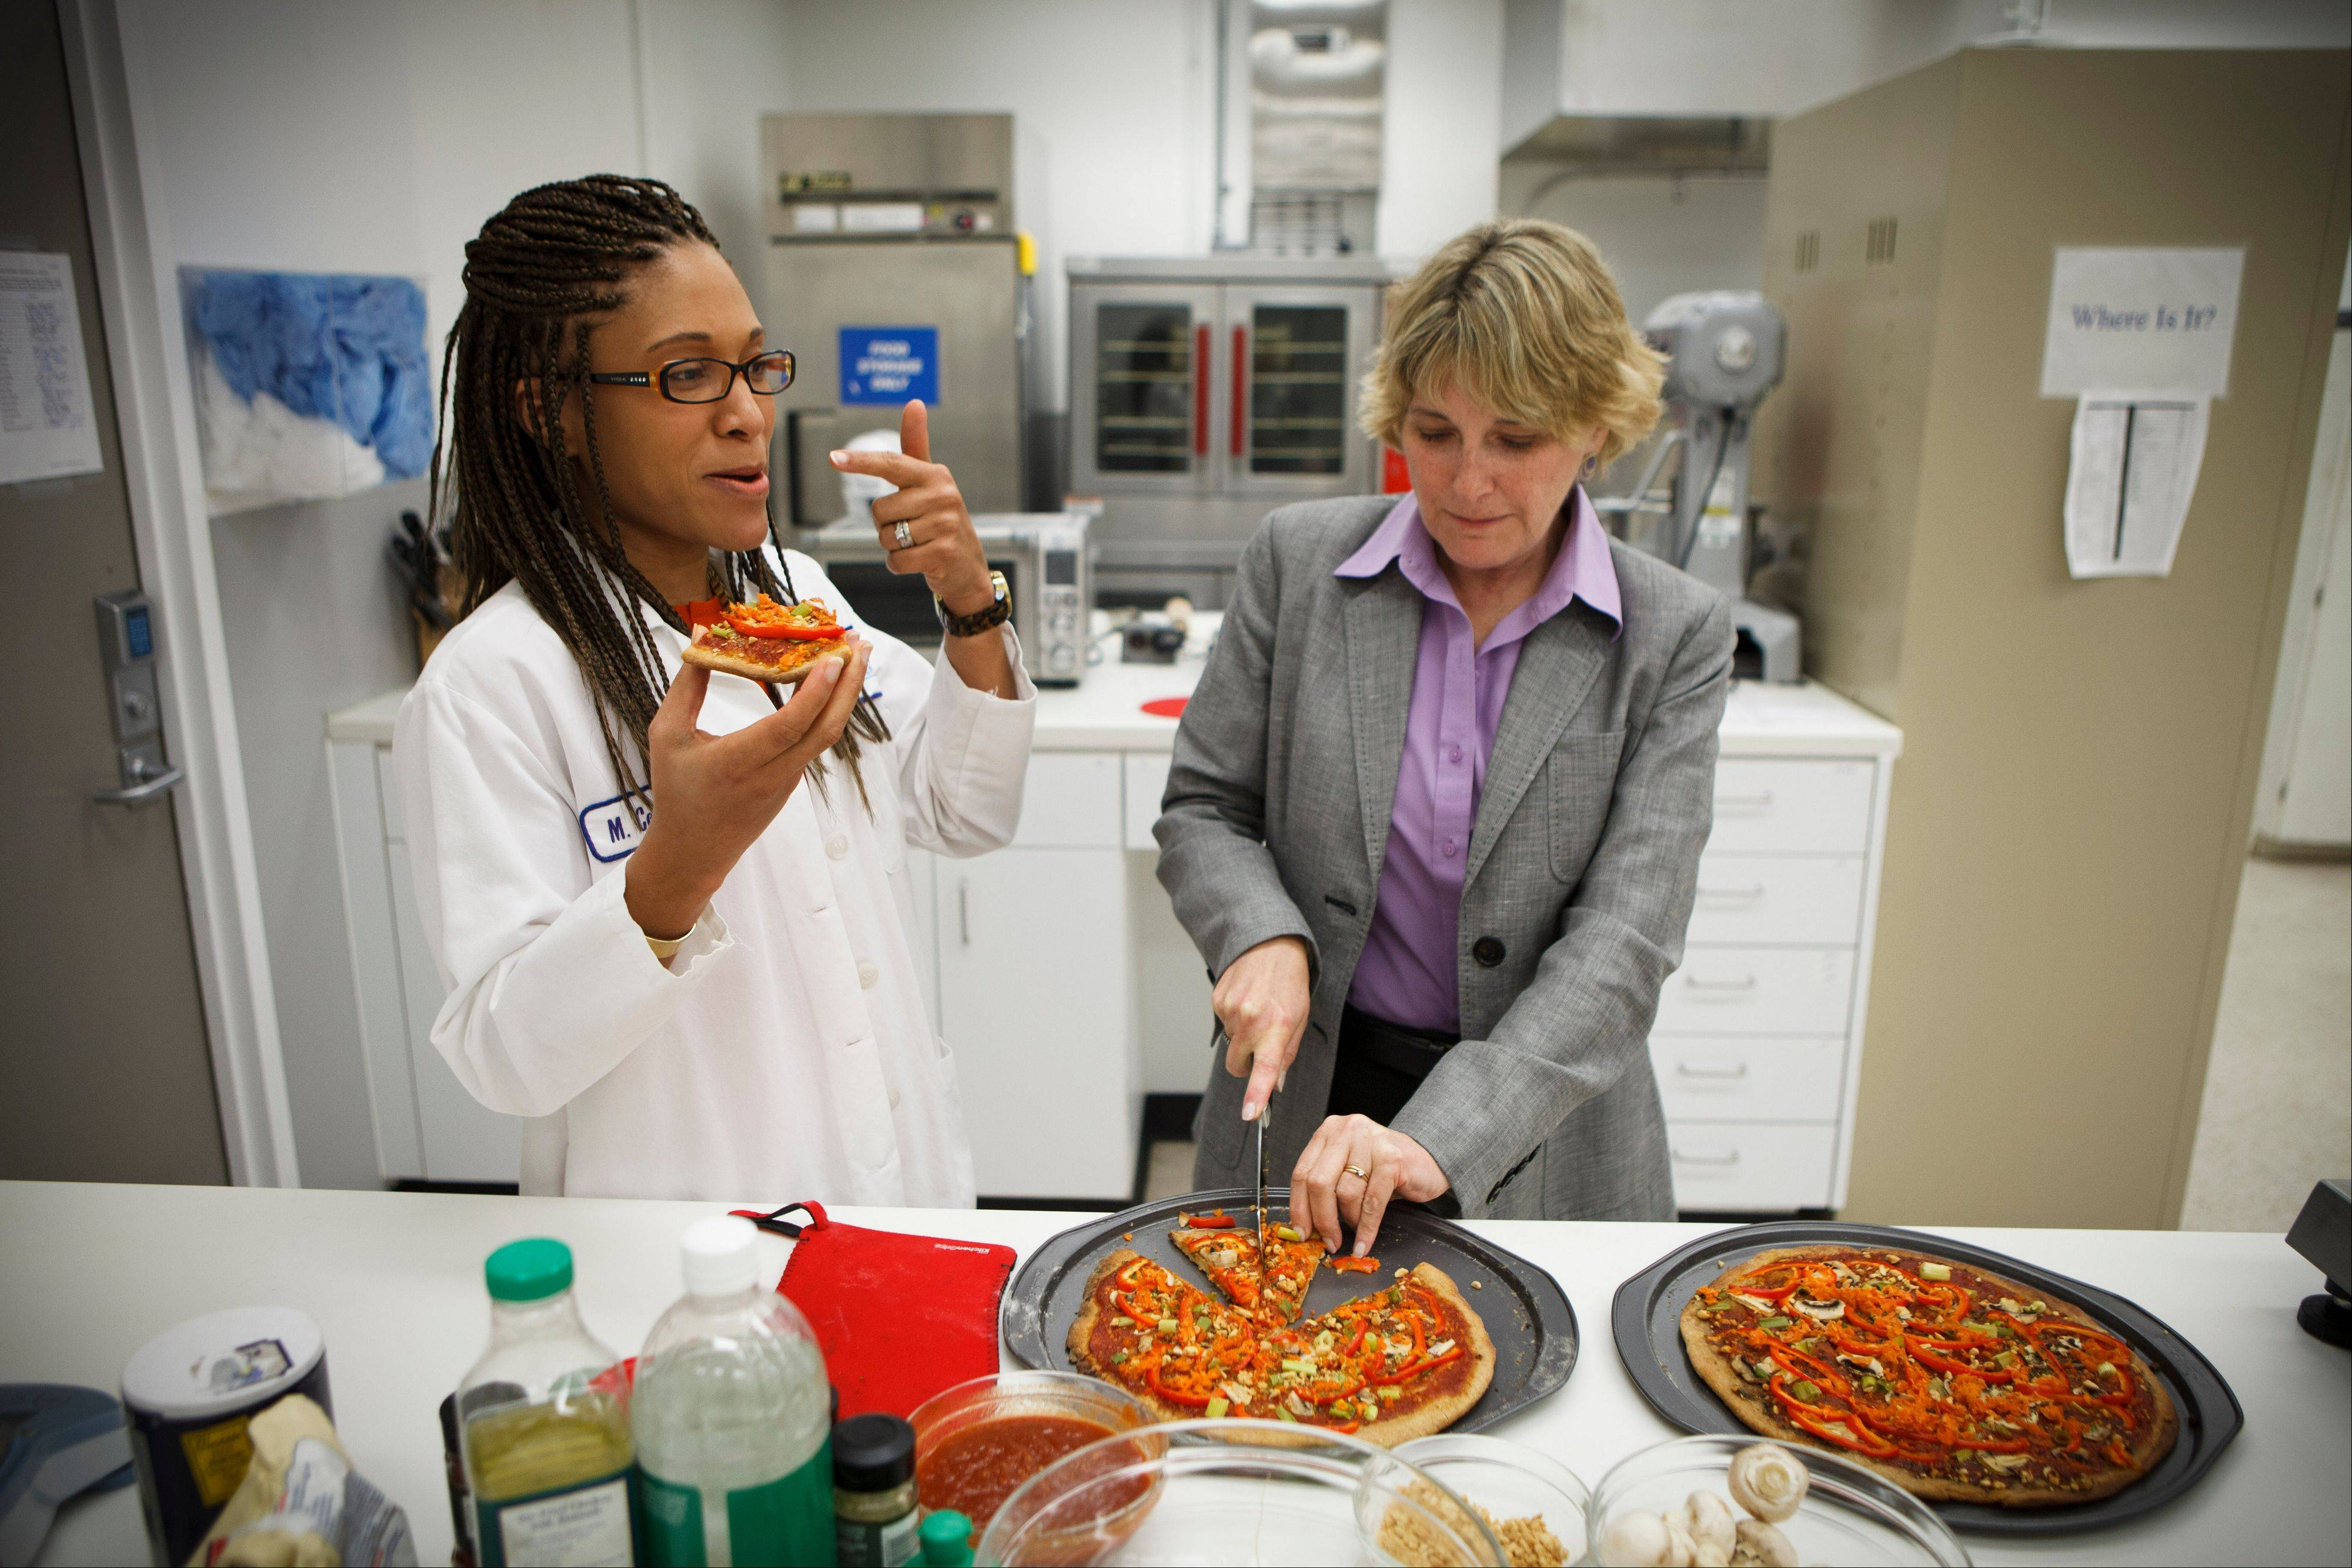 Associated Press NASA�s Advanced Food Technology Project manager Michele Perchonok, right, and Lockeed Martin Sr. Research Scientist Maya Cooper, try a pizza recipe being tested in a kitchen at Johnson Space Center in Houston.